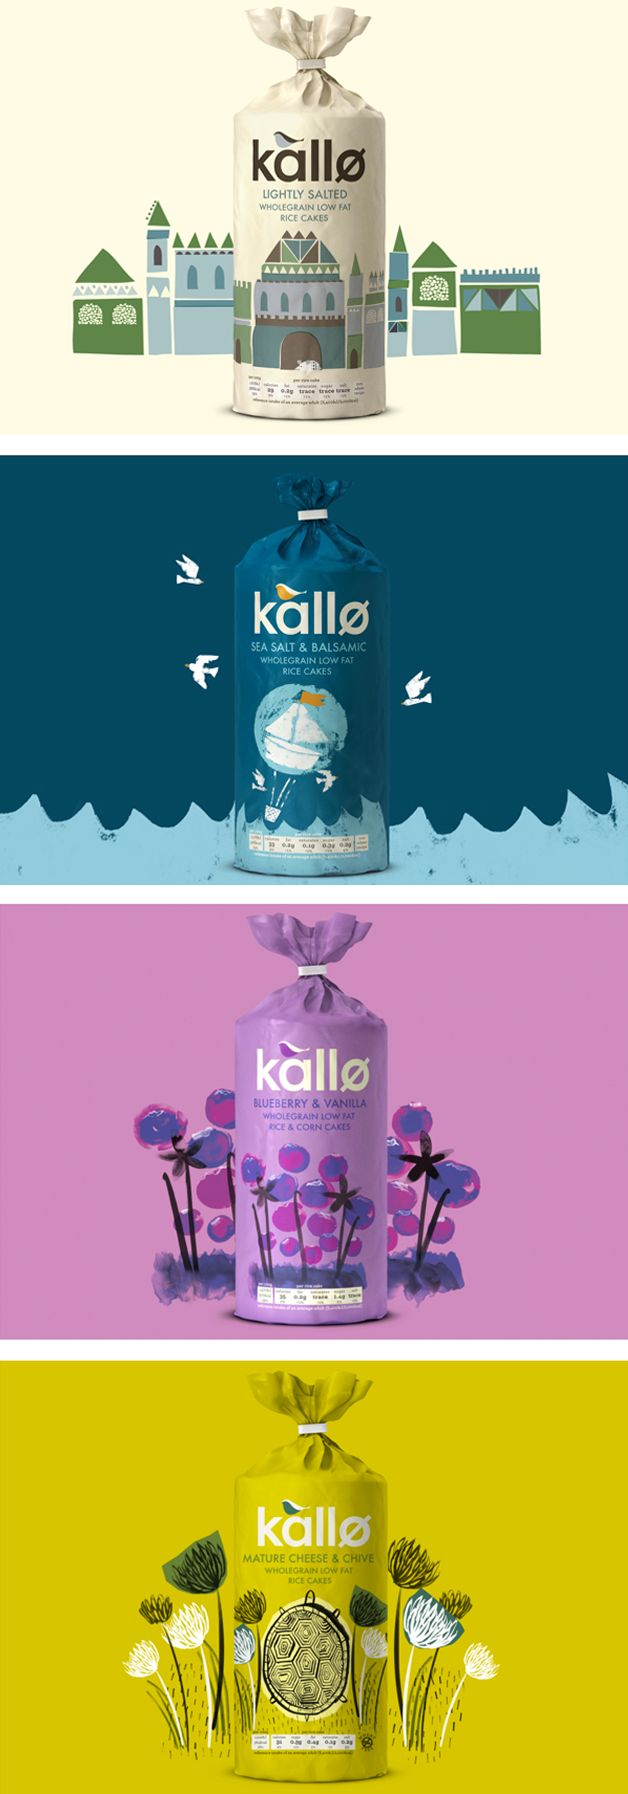 Kallo, food packaging design #packagingdesign #design Visit us at www.wer1digital.co.uk